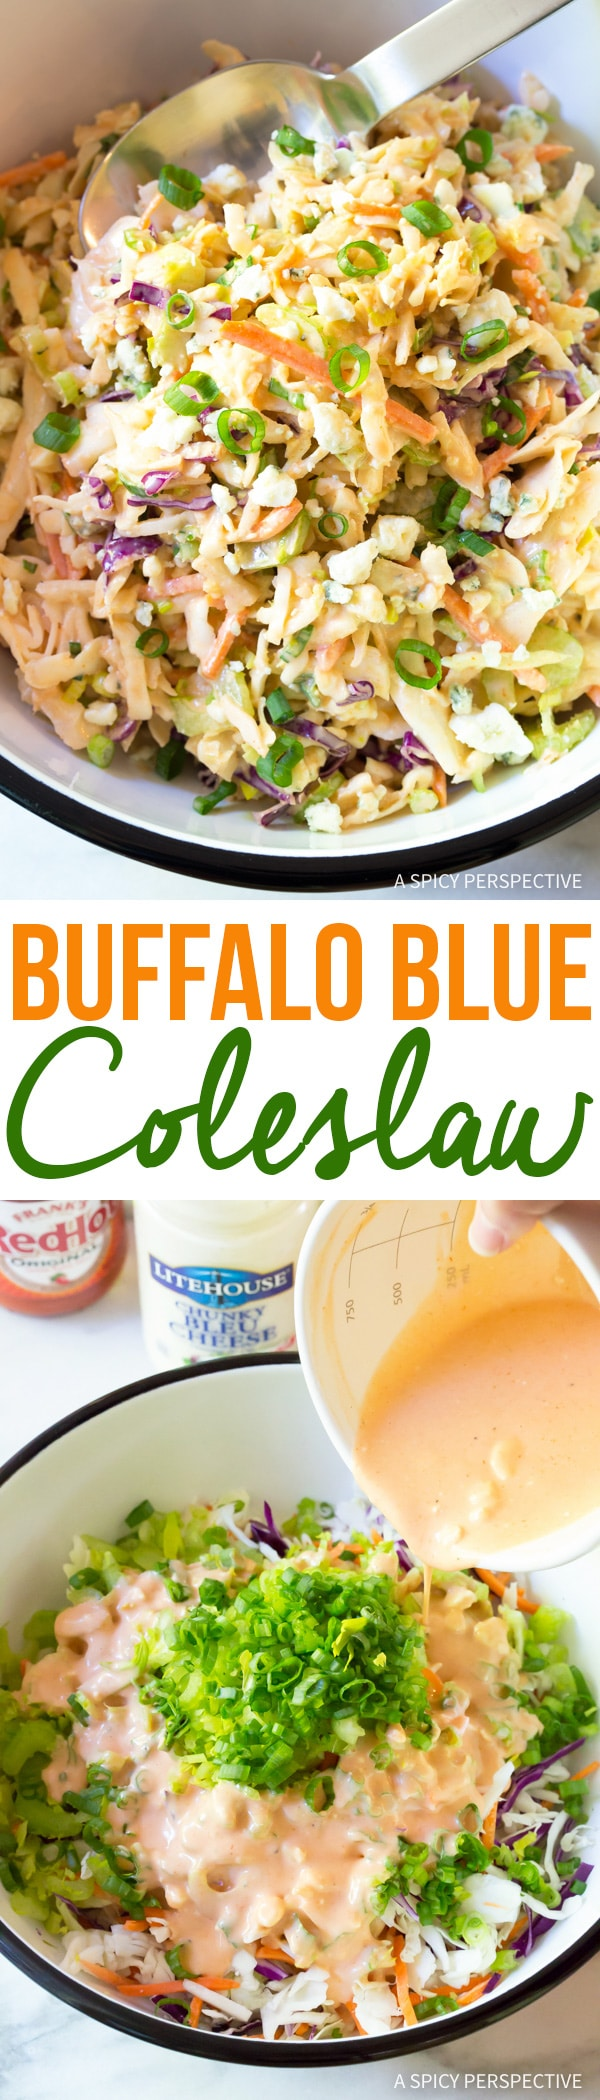 Zesty Buffalo Blue Cheese Coleslaw Recipe (Cole Slaw)